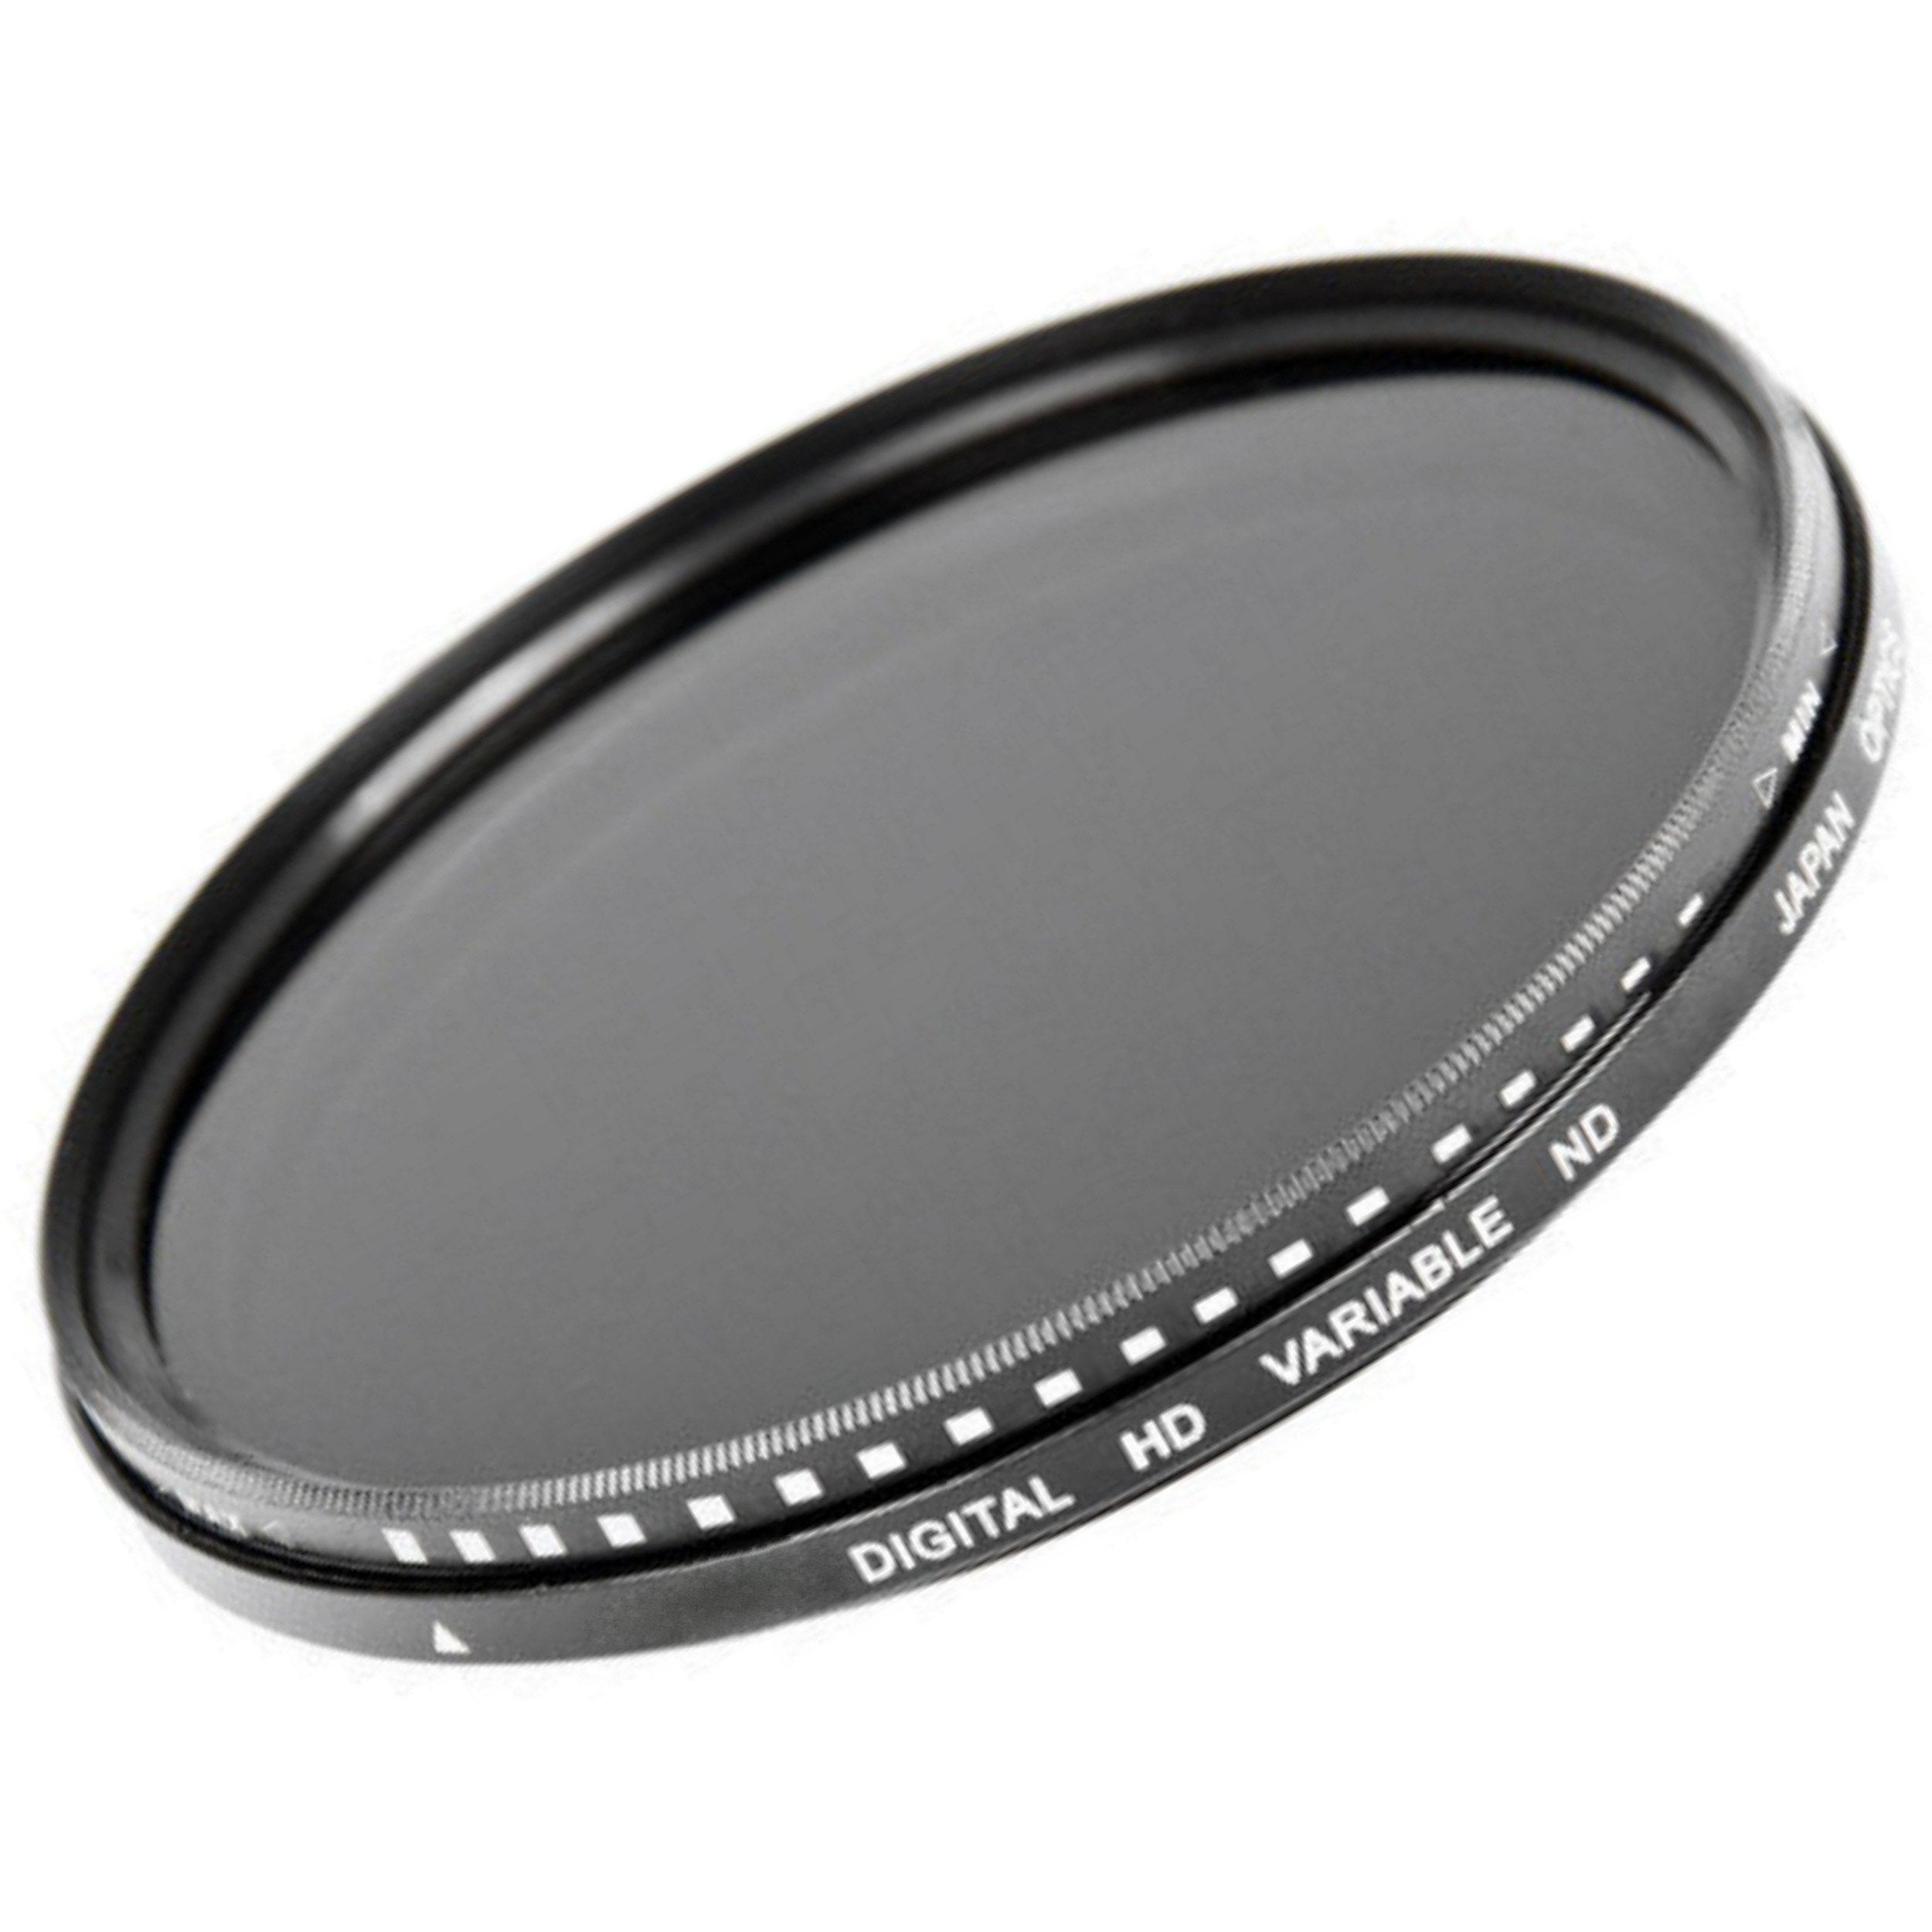 82mm ND Filter - 8 Stops of Light ND Adjustable Neutral Density Variable Fader Filter Lens 82mm Fits Canon EF 24-70mm f/2.8L II USM 82mm Neutral Density Filter, 82 mm ND Filter Japan by Shop Smart Deals